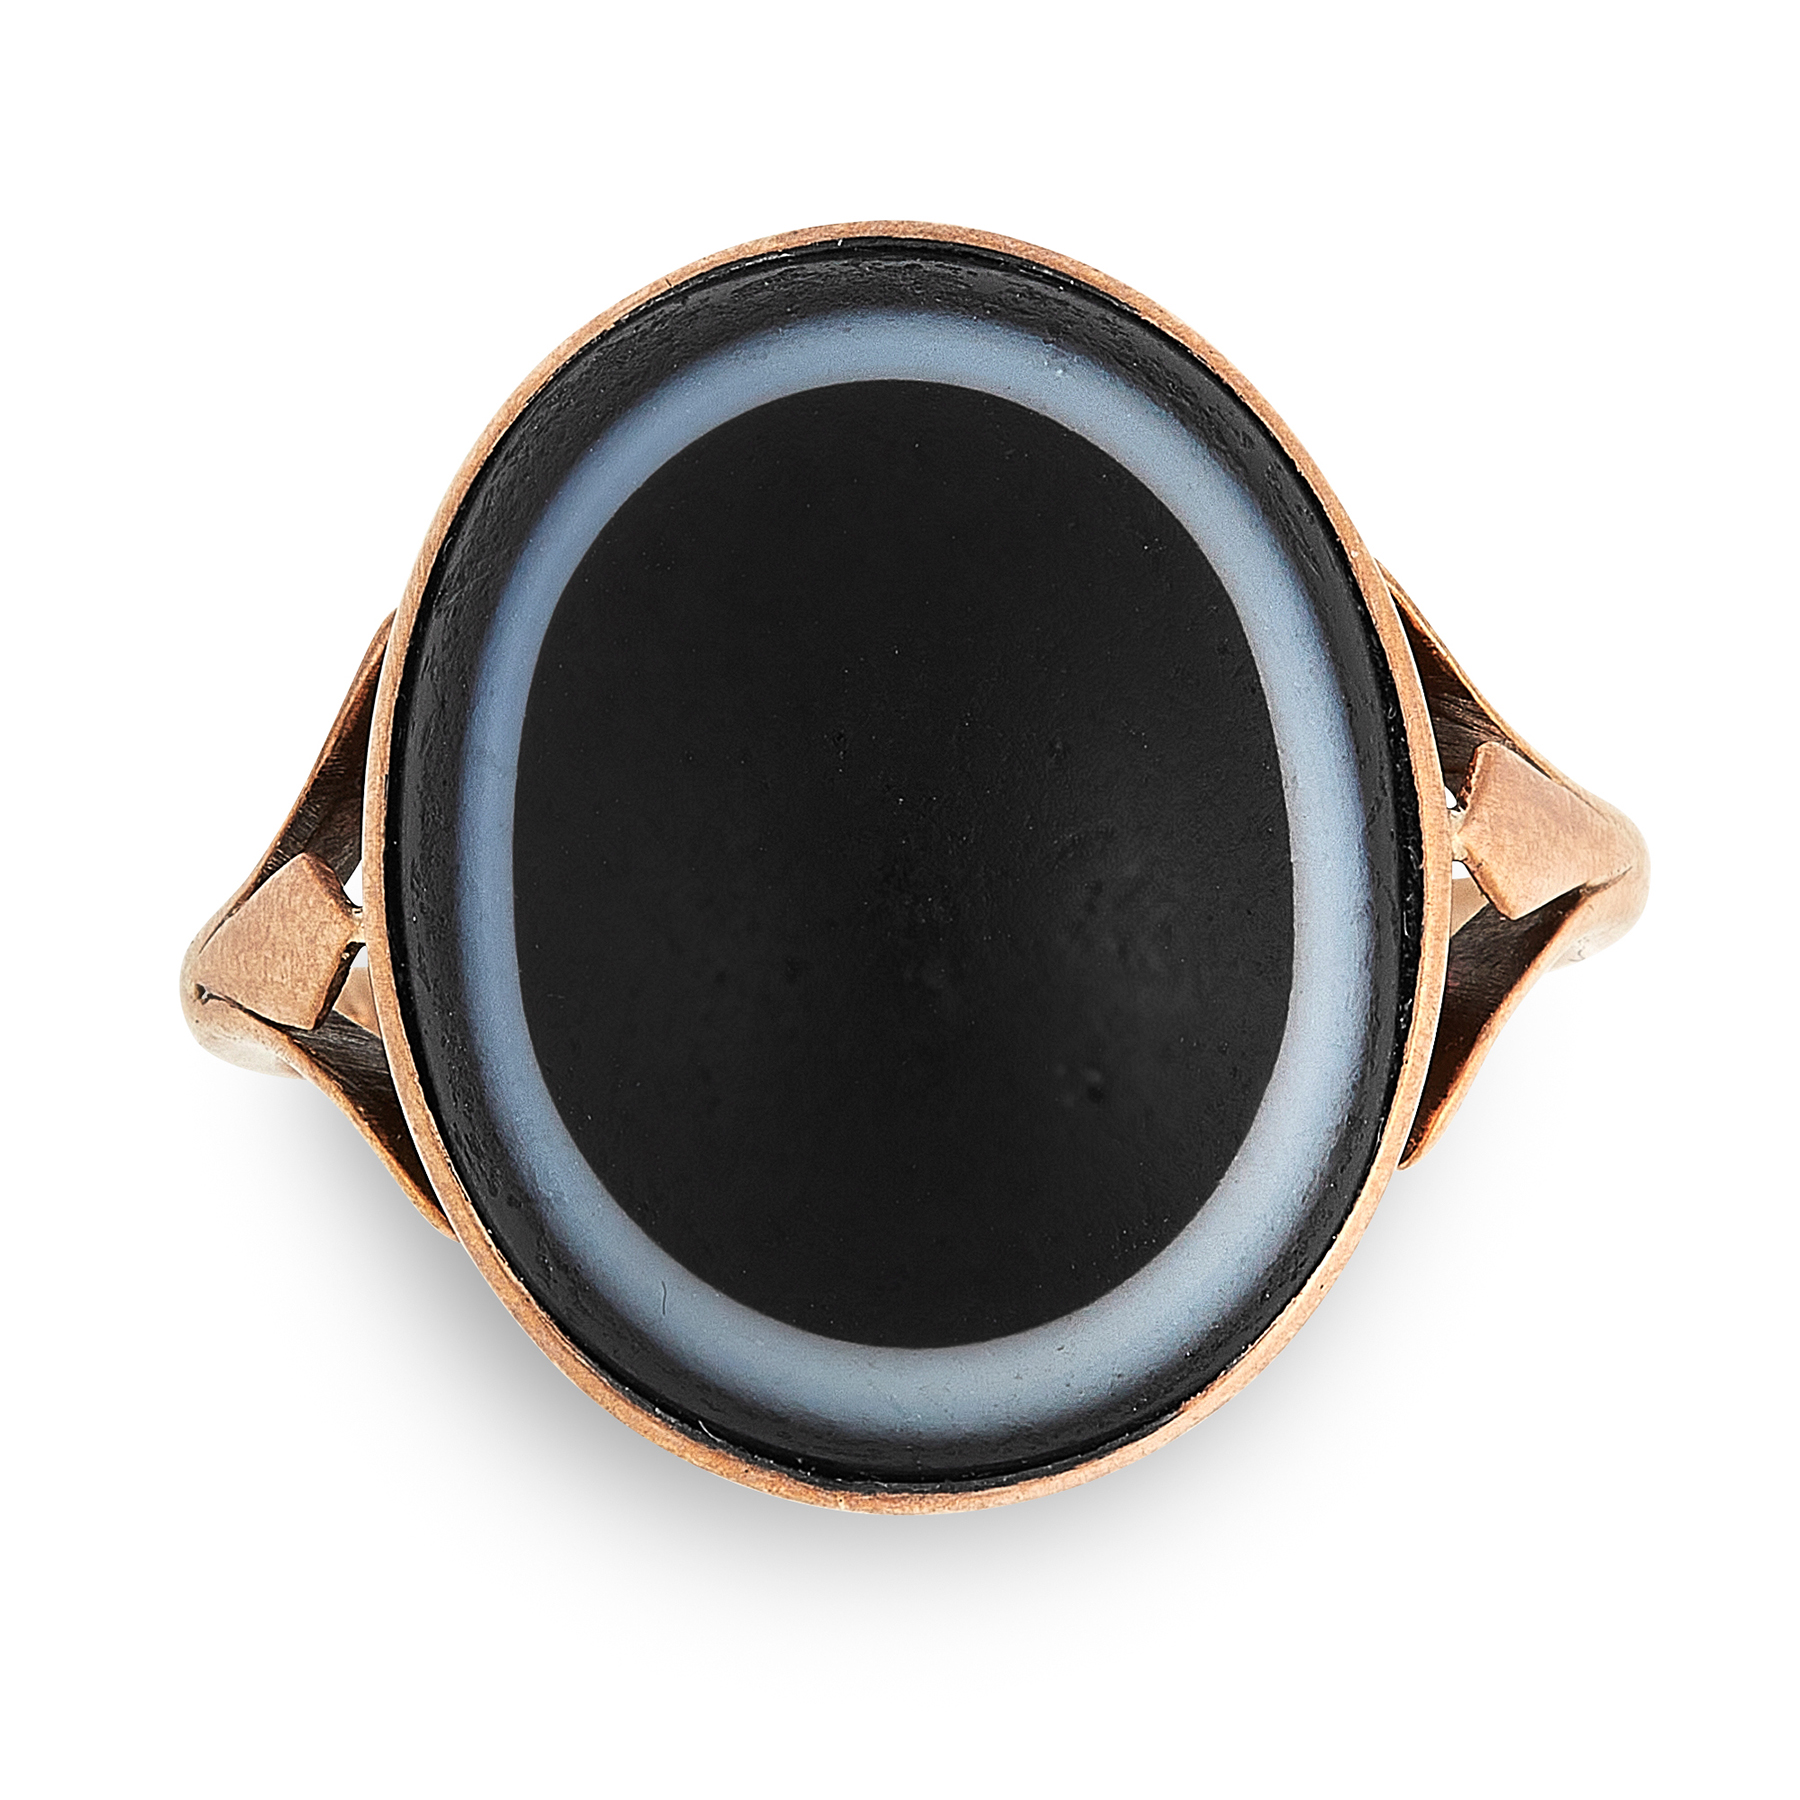 AN ANTIQUE BANDED AGATE RING in yellow gold, the bifurcated shank set with an oval banded agate